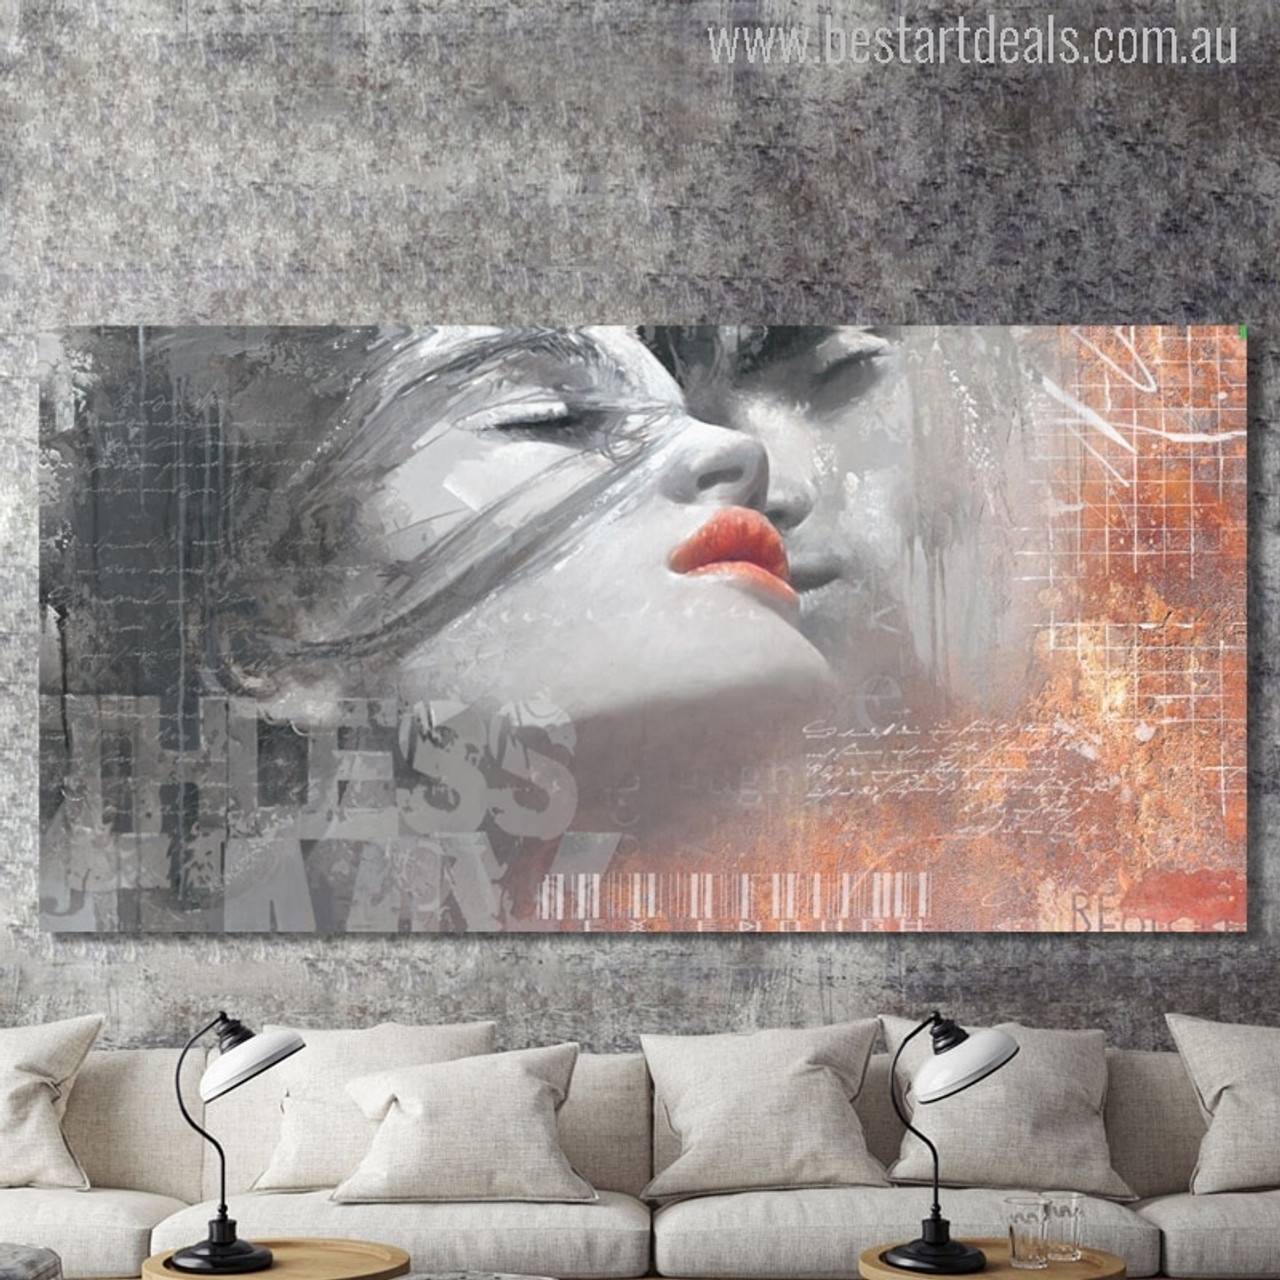 NEW LOVE KISS  REDDISH PICTURE PRINT ON FRAMED CANVAS  WALL ART HOME DECORATION